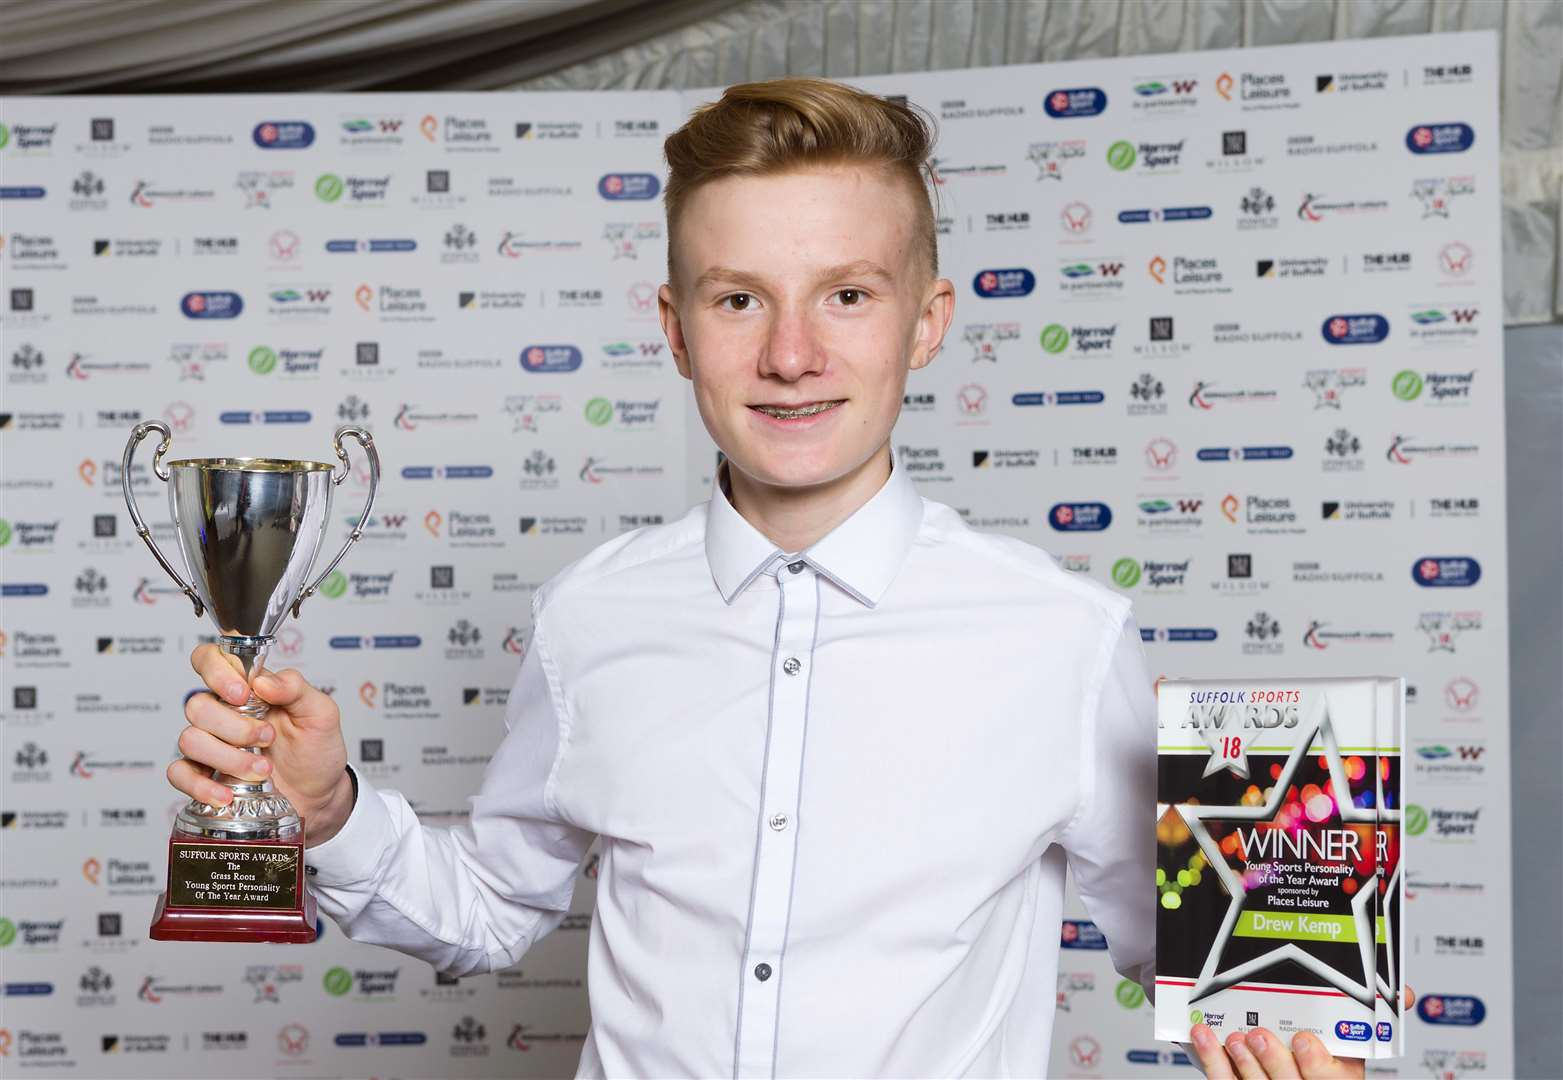 Drew Kemp won Young Personality of the Year award at Suffolk Sports Awards 2018/19 (40400531)